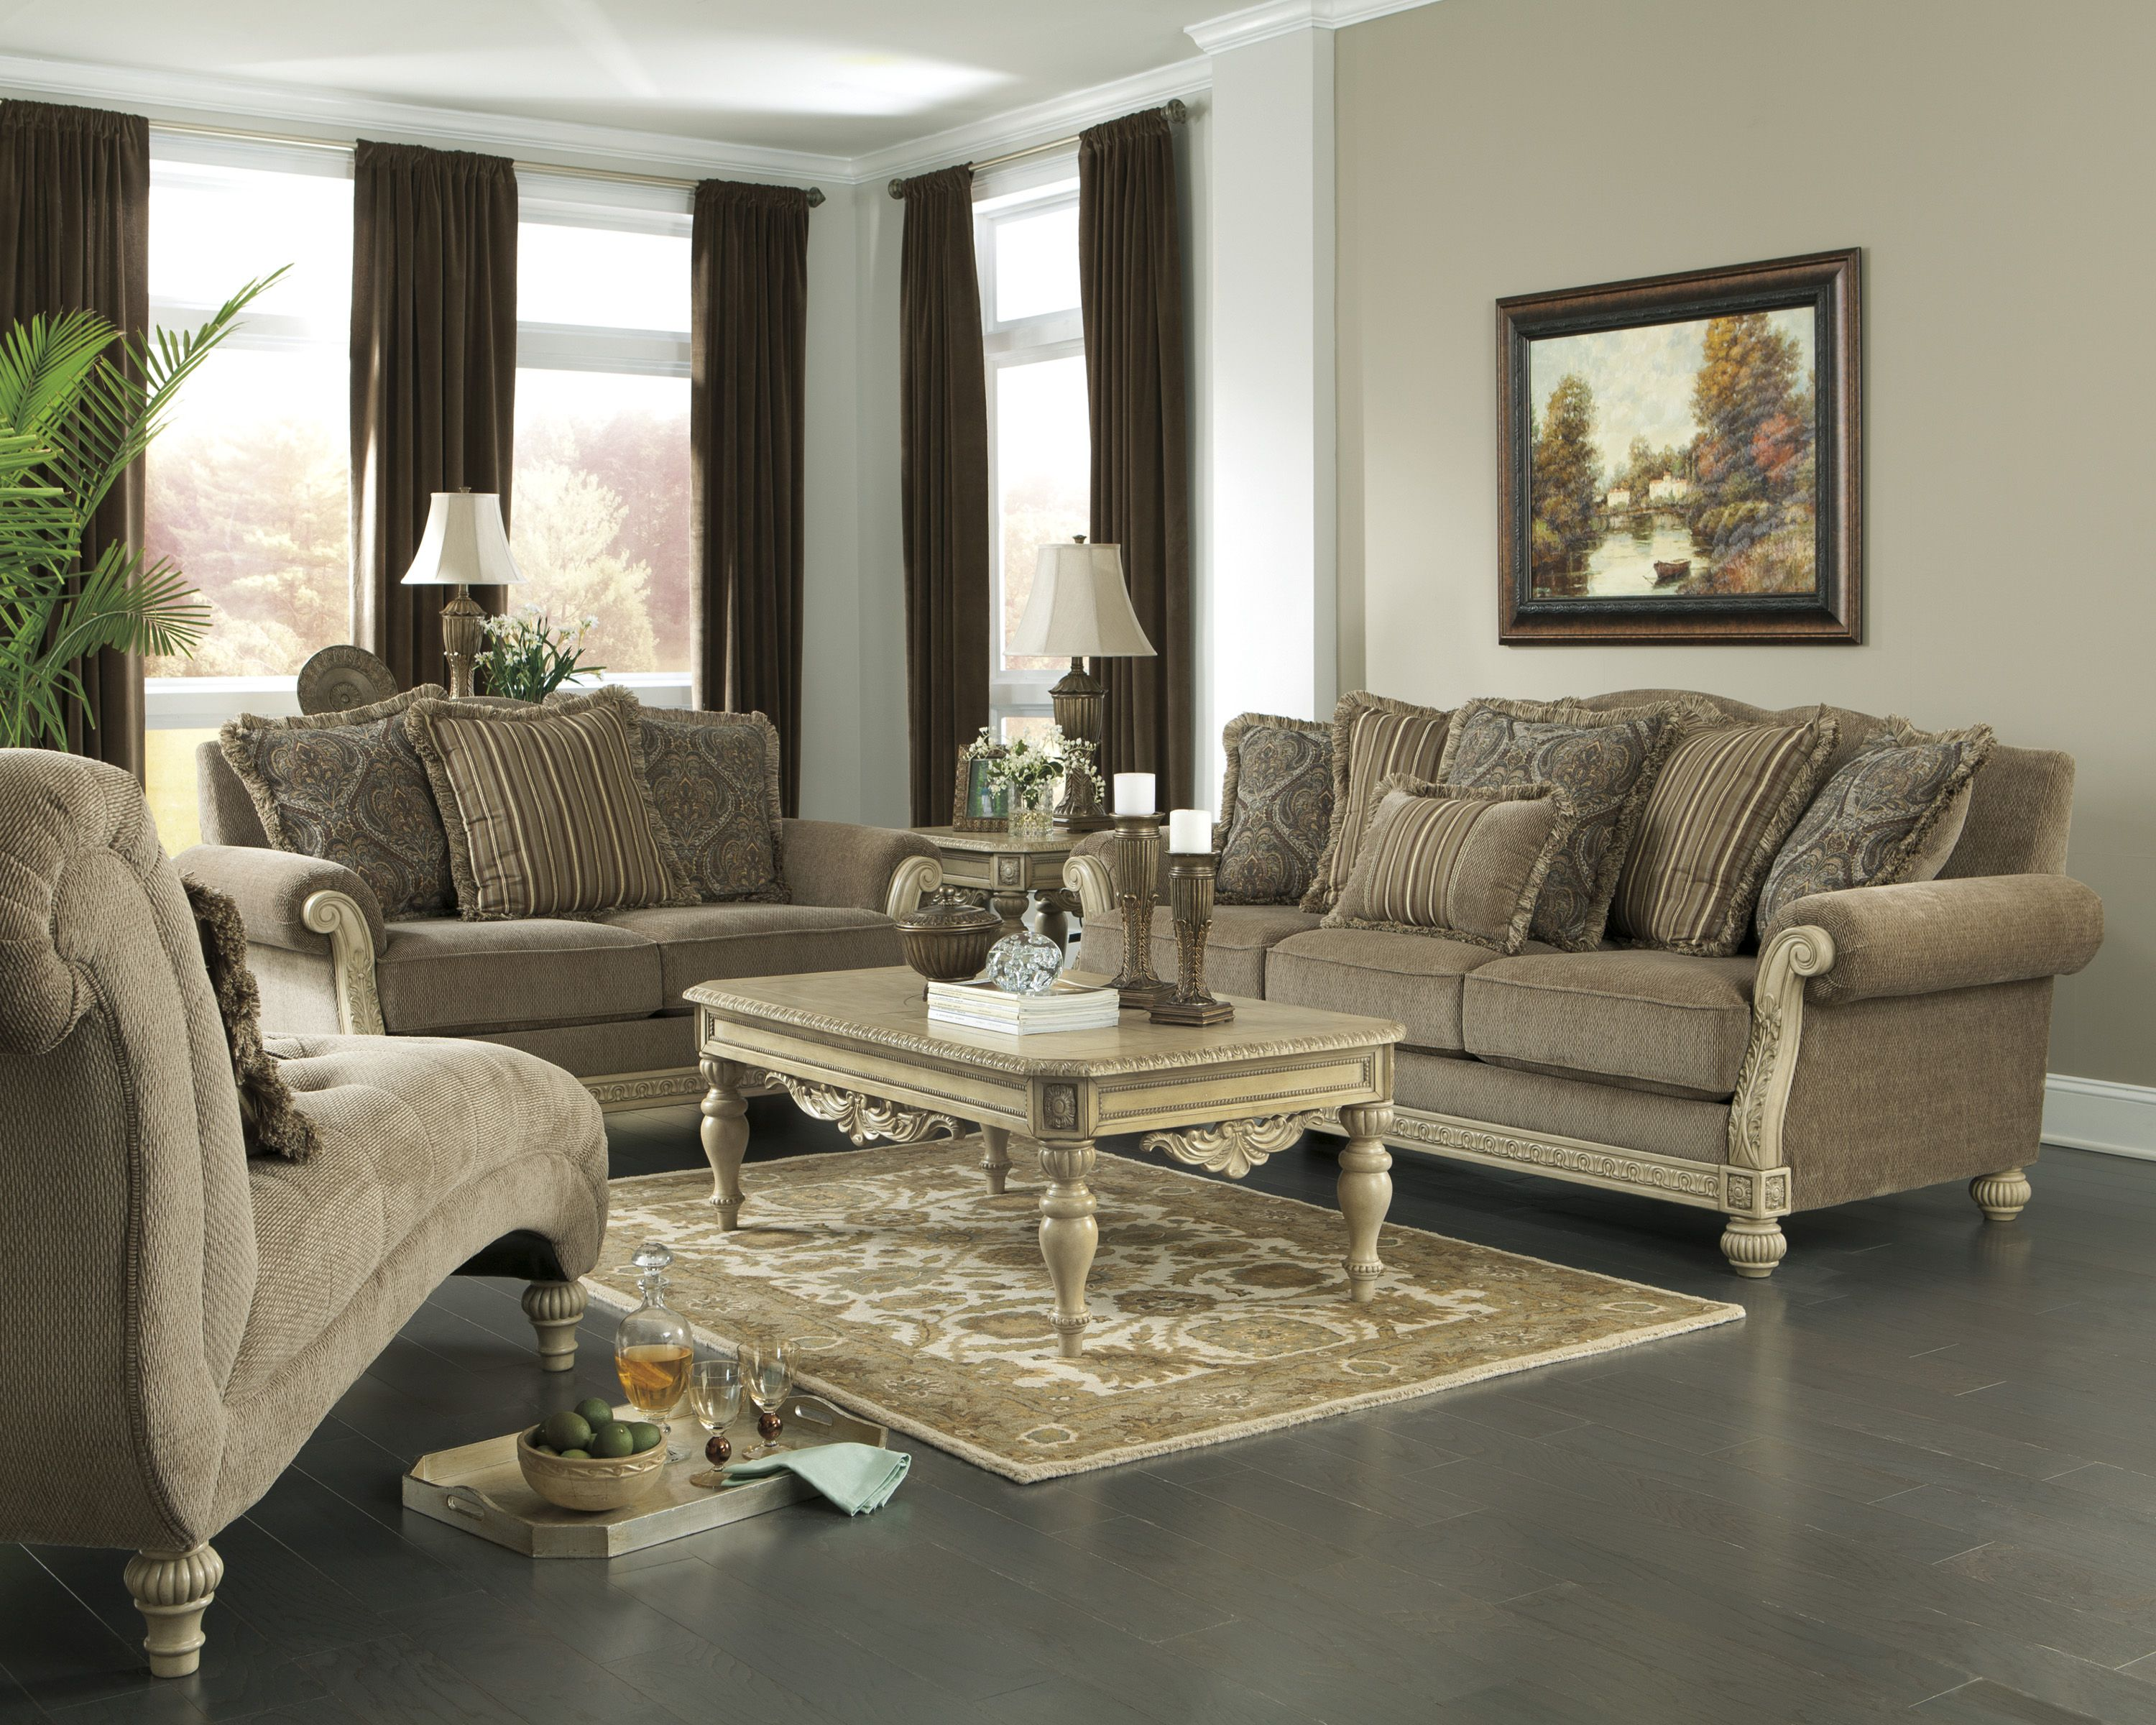 Parking Bay Platinum Collection Ashley Furniture Sofa - Ashley furniture living room table set